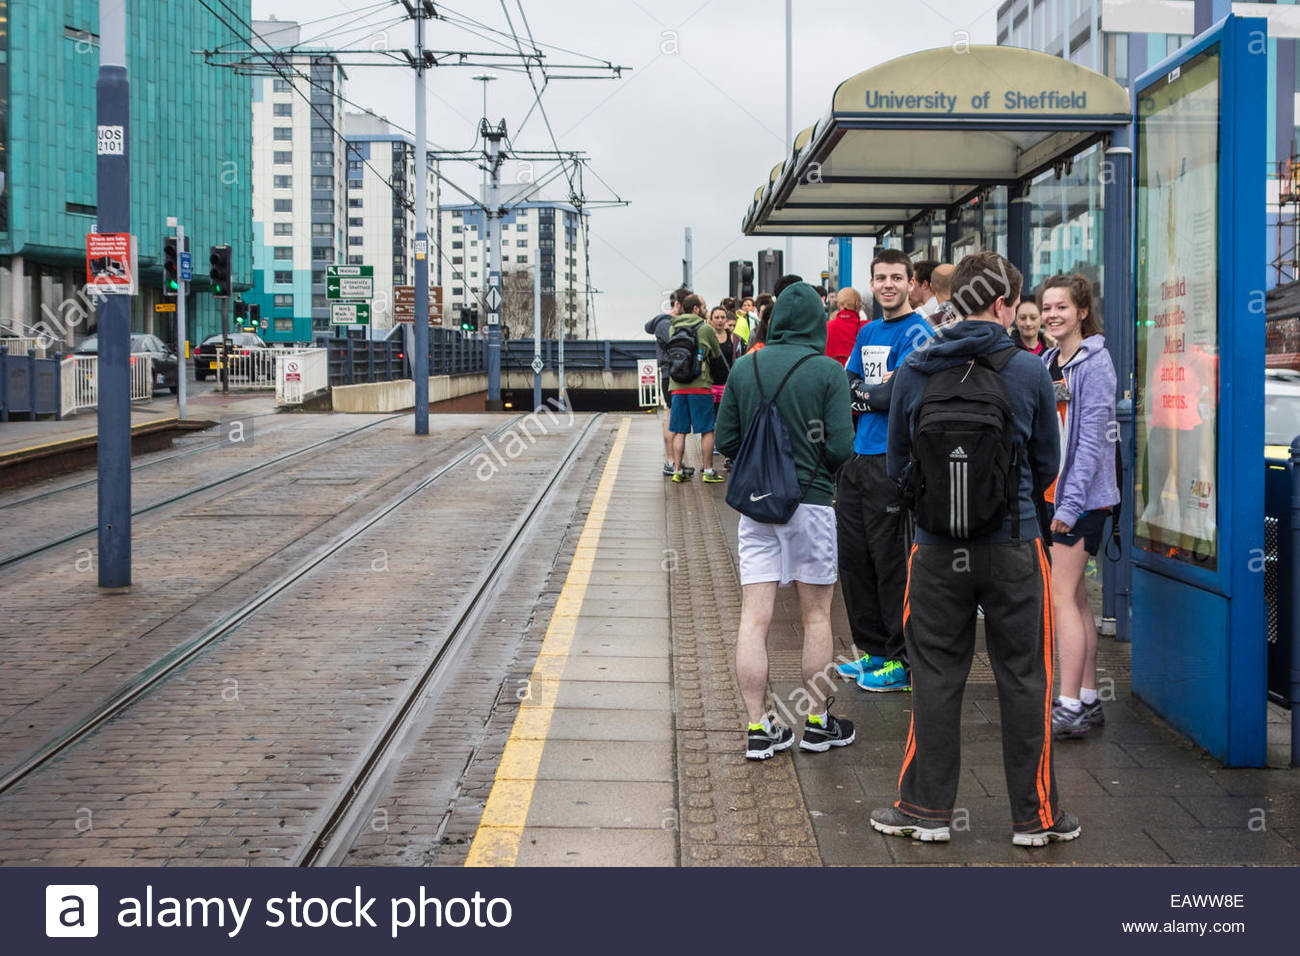 Runners waiting for a tram at the University of Sheffield before the half marathon - Stock Image